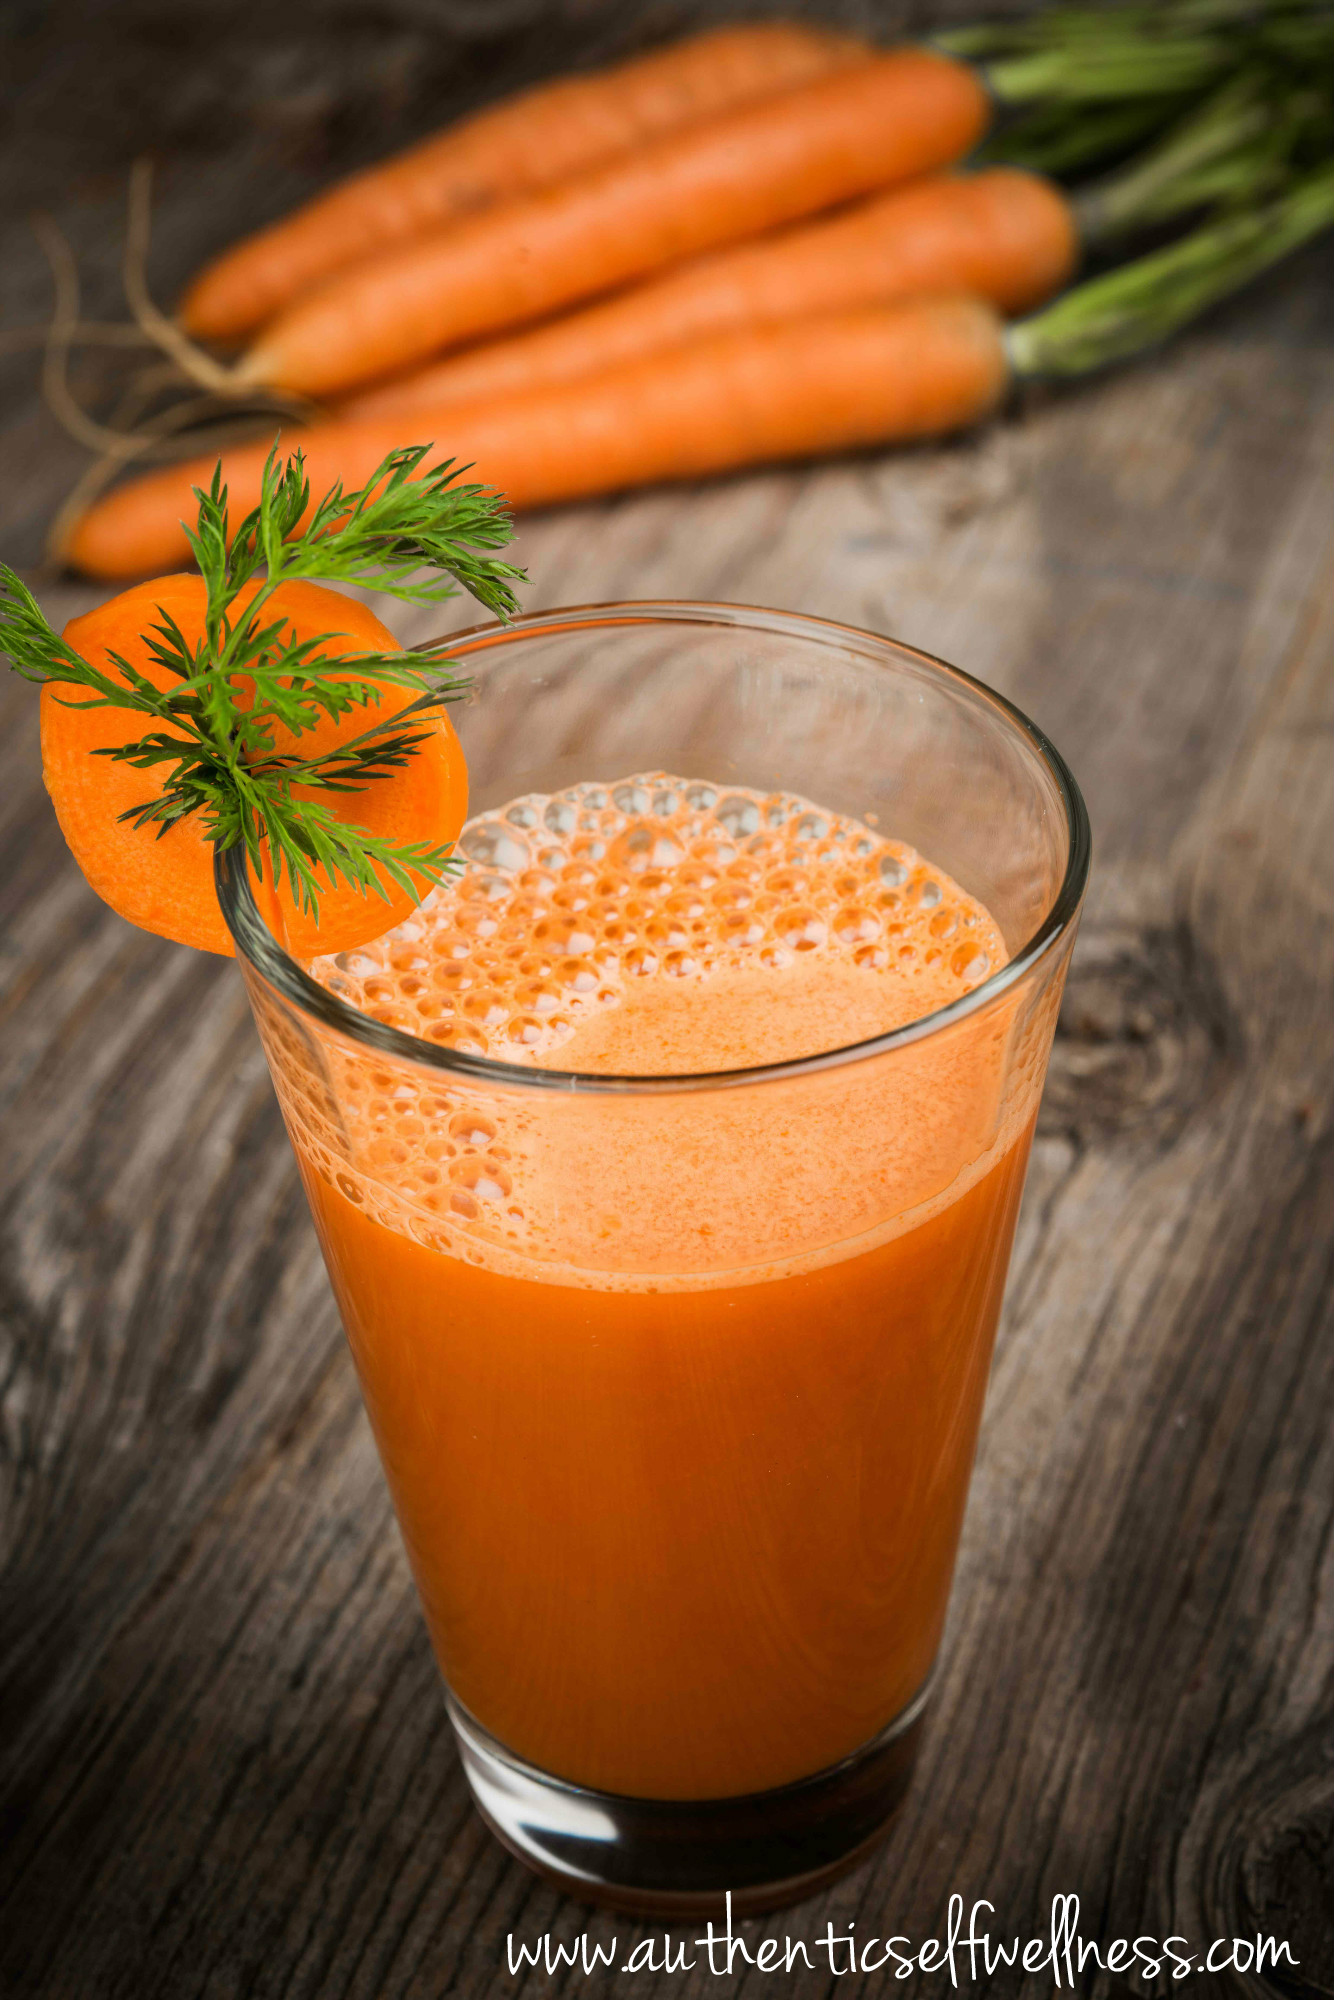 Ginger Turmeric Carrot Juice